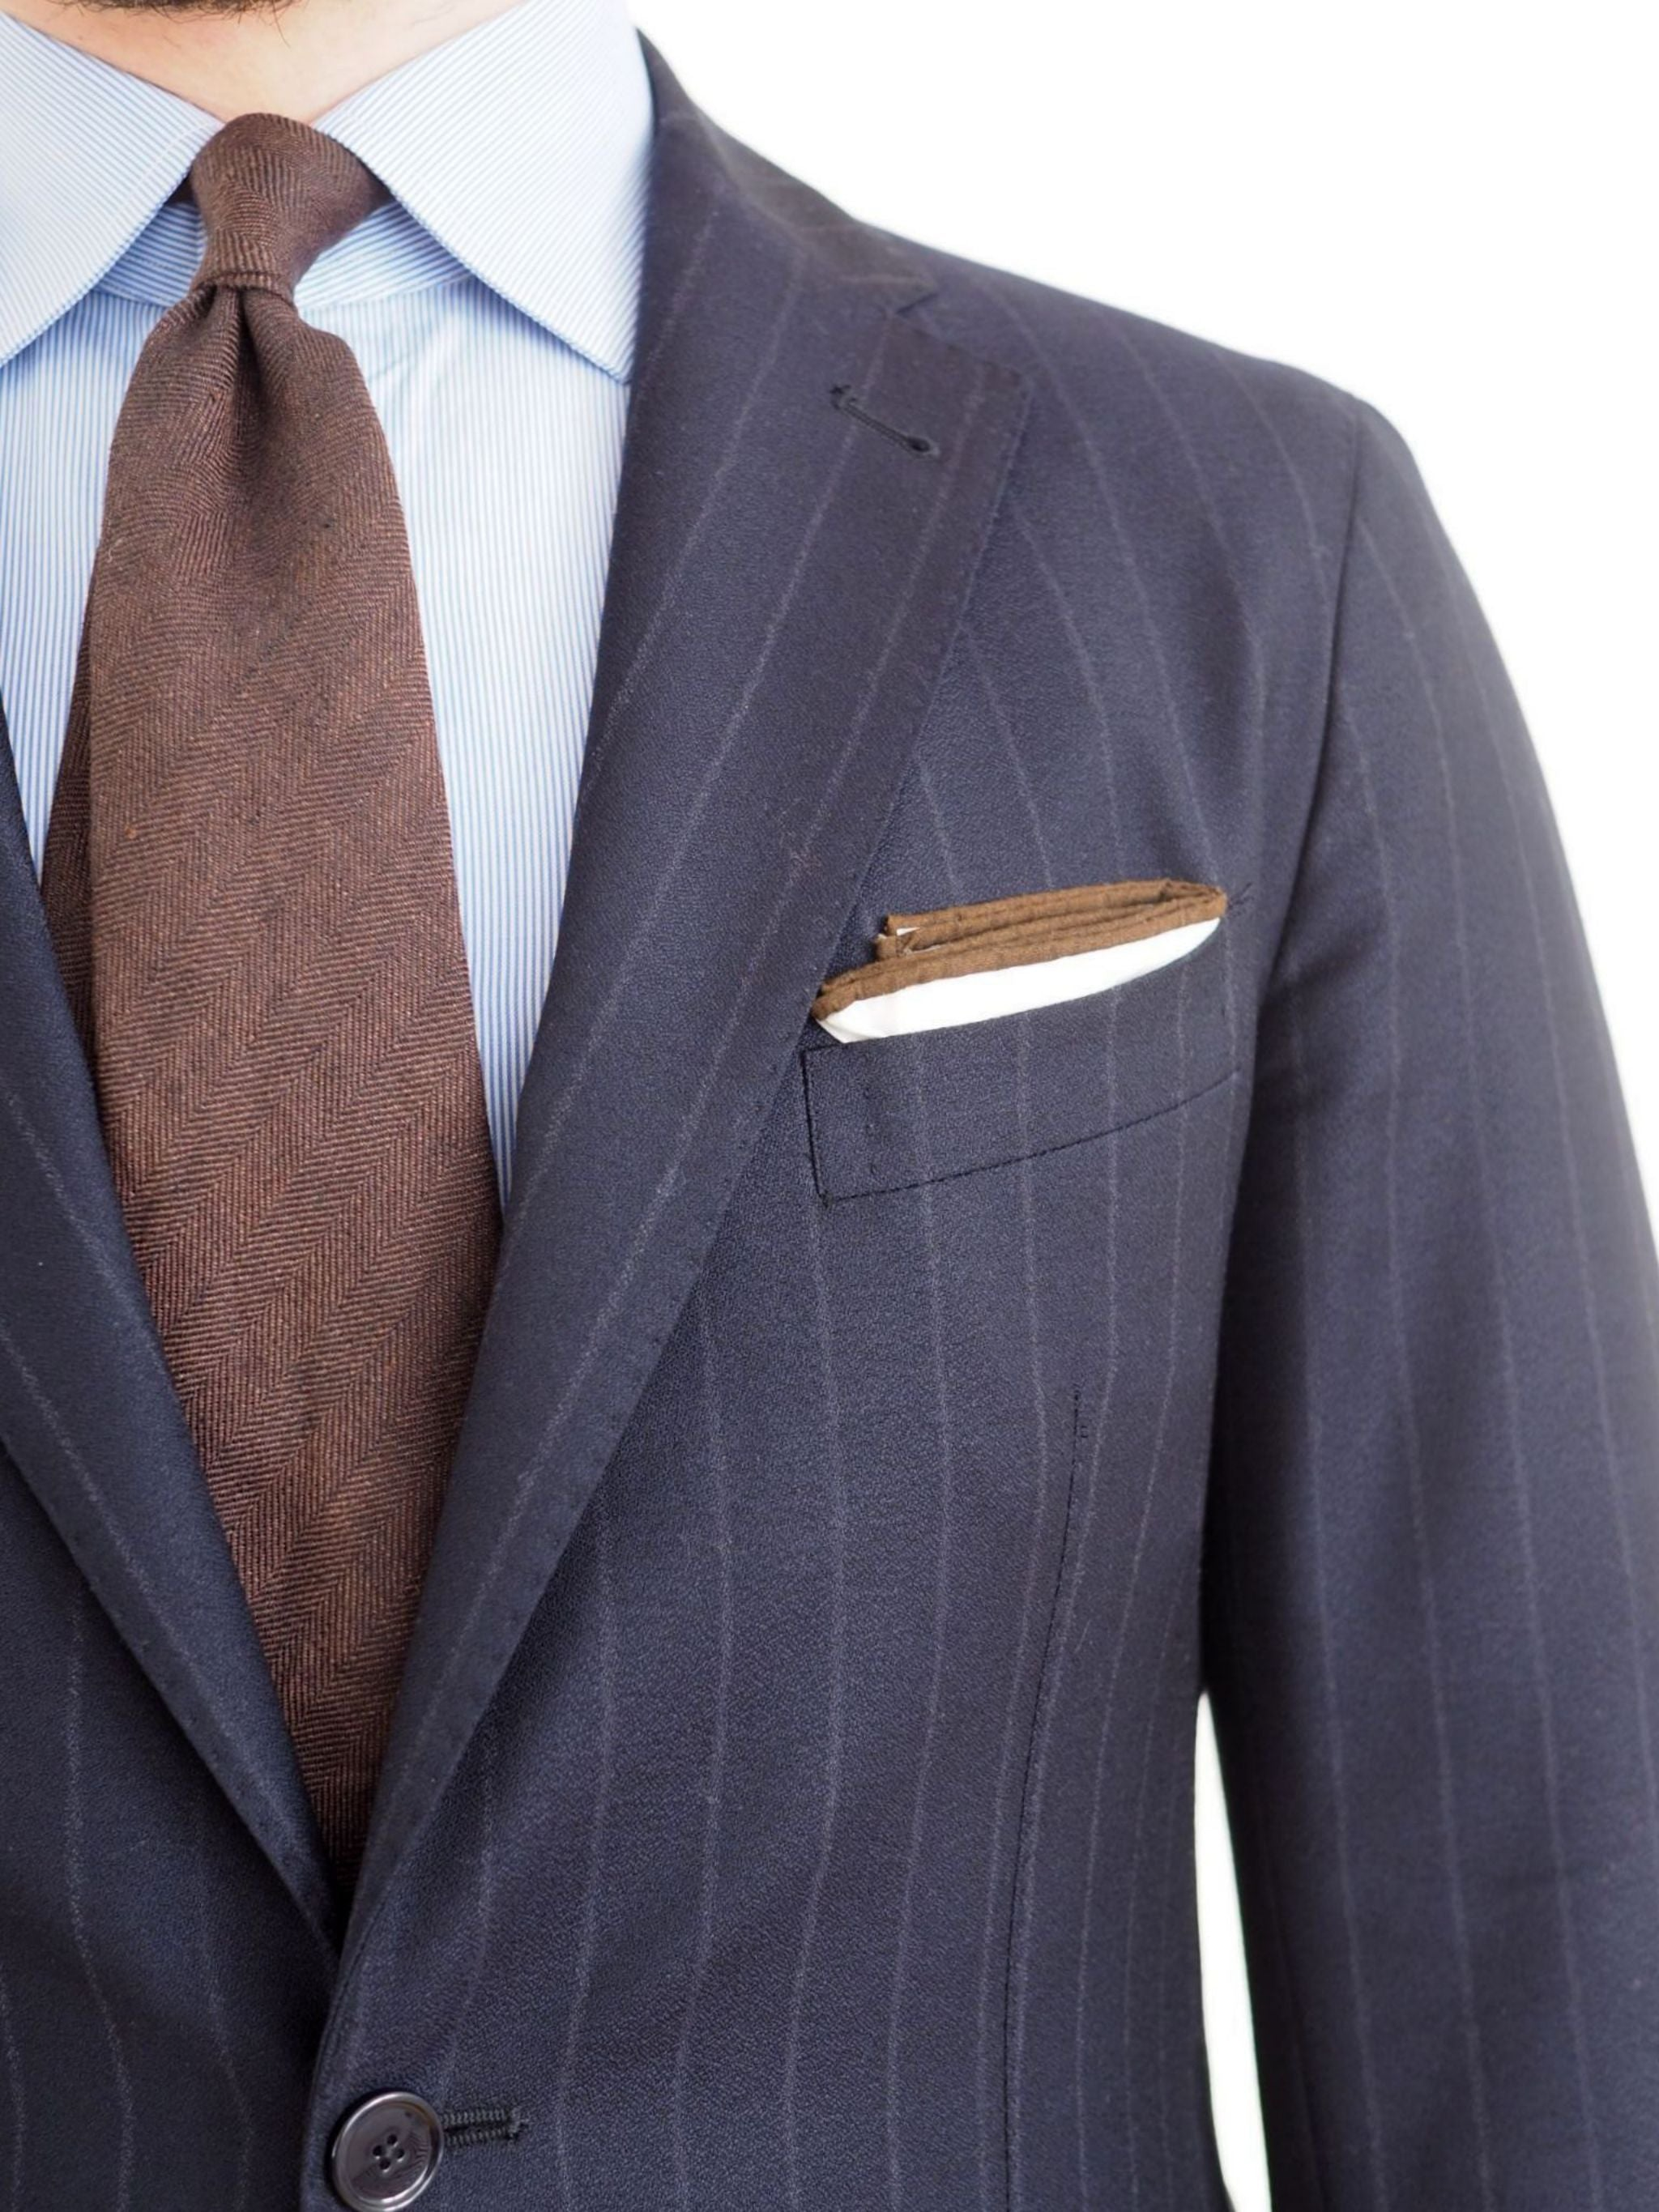 Dark blue chalk stripe suit with brown tie and cotton pocket square - close-up